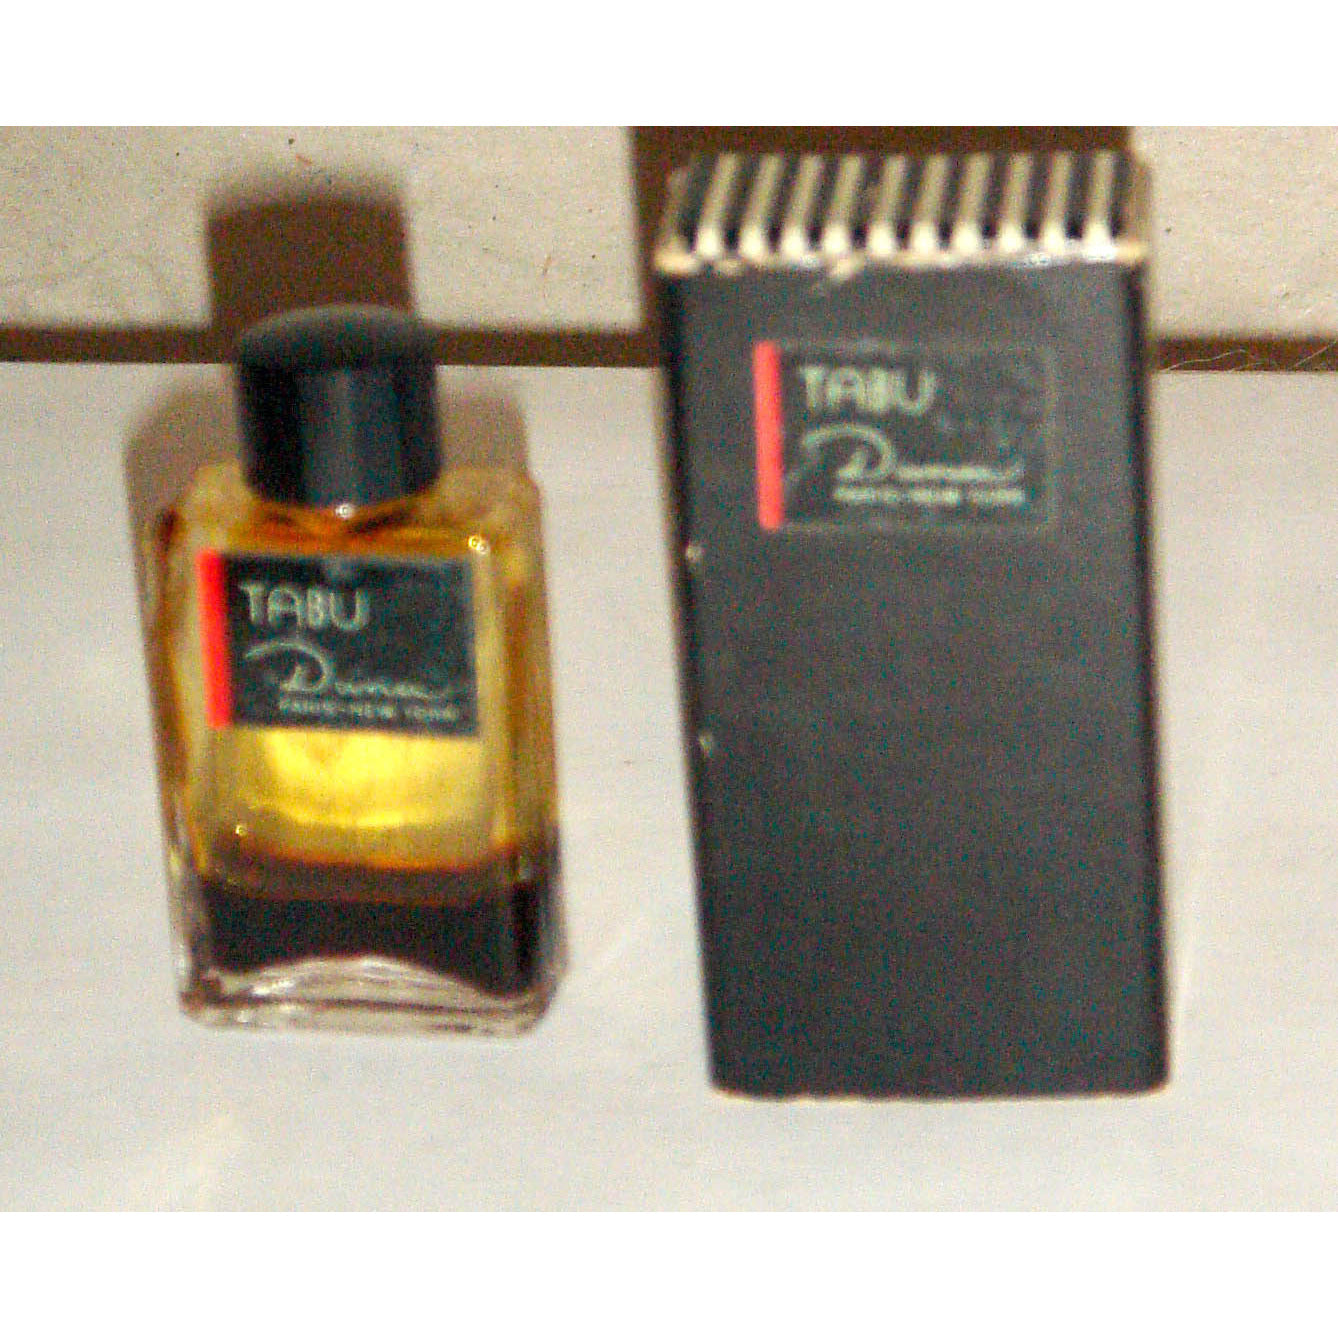 Vintage Tabu Perfume Mini By Dana